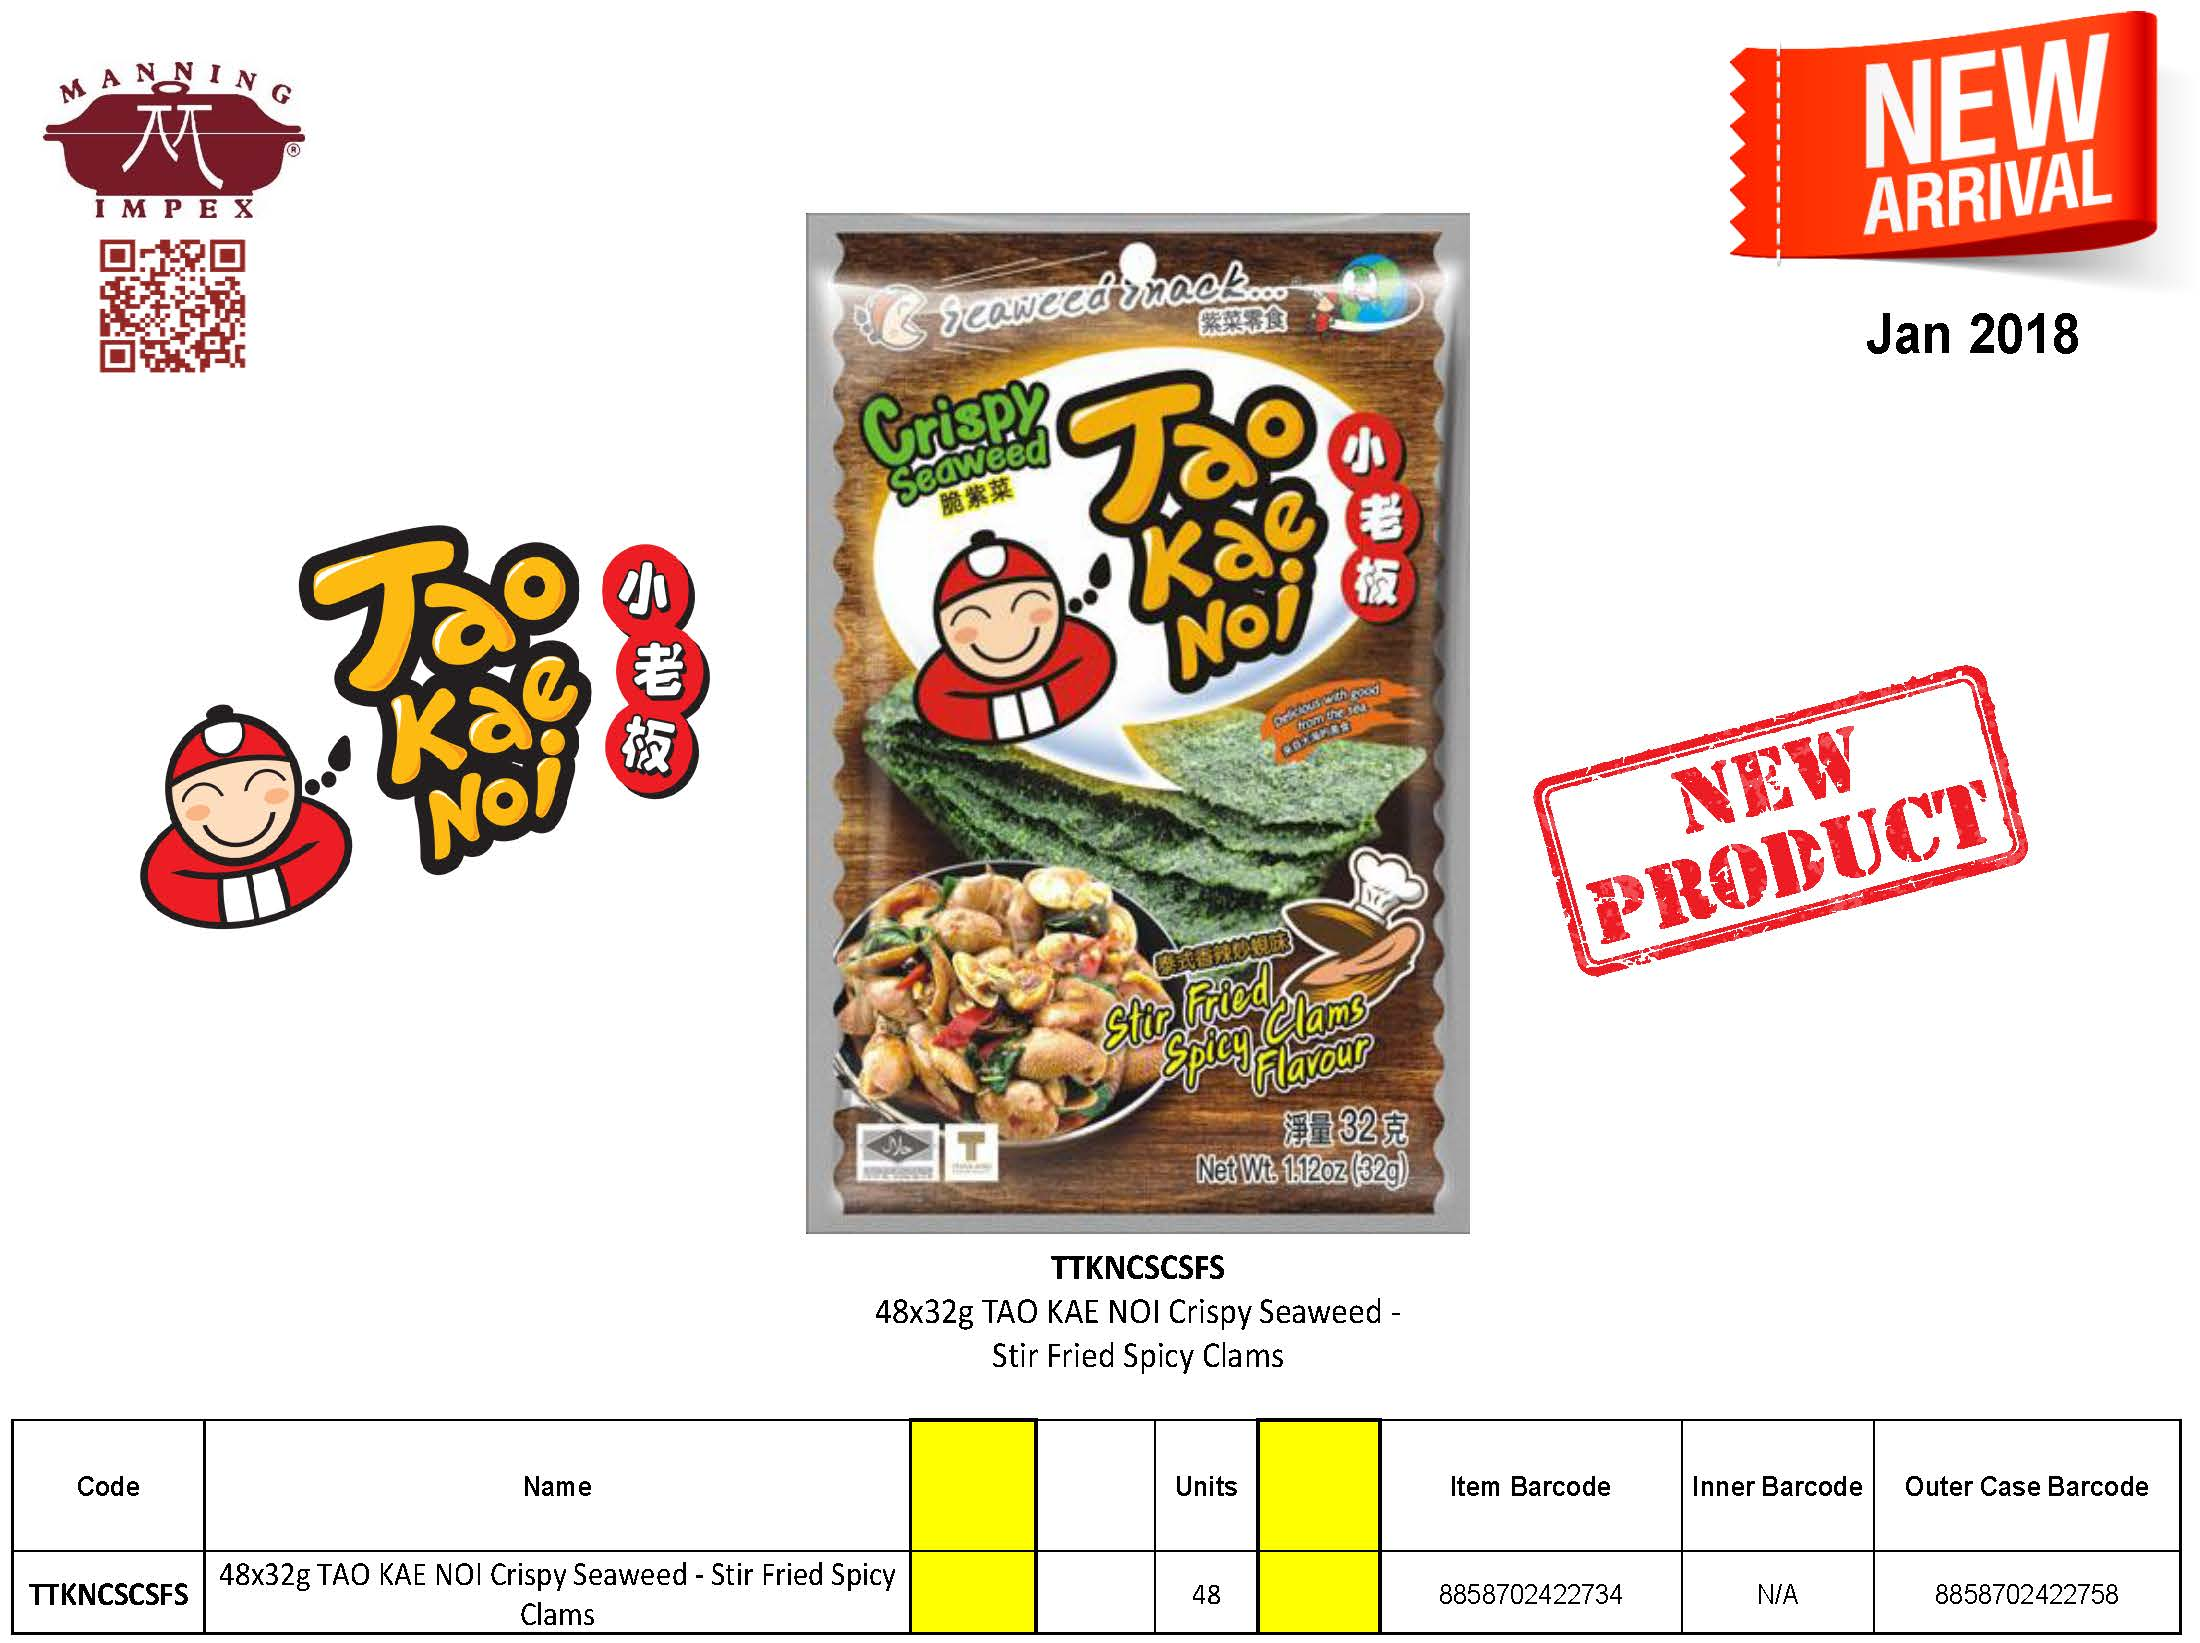 Tao Kae Noi Launches a New Korean Style Seaweed Snack Range